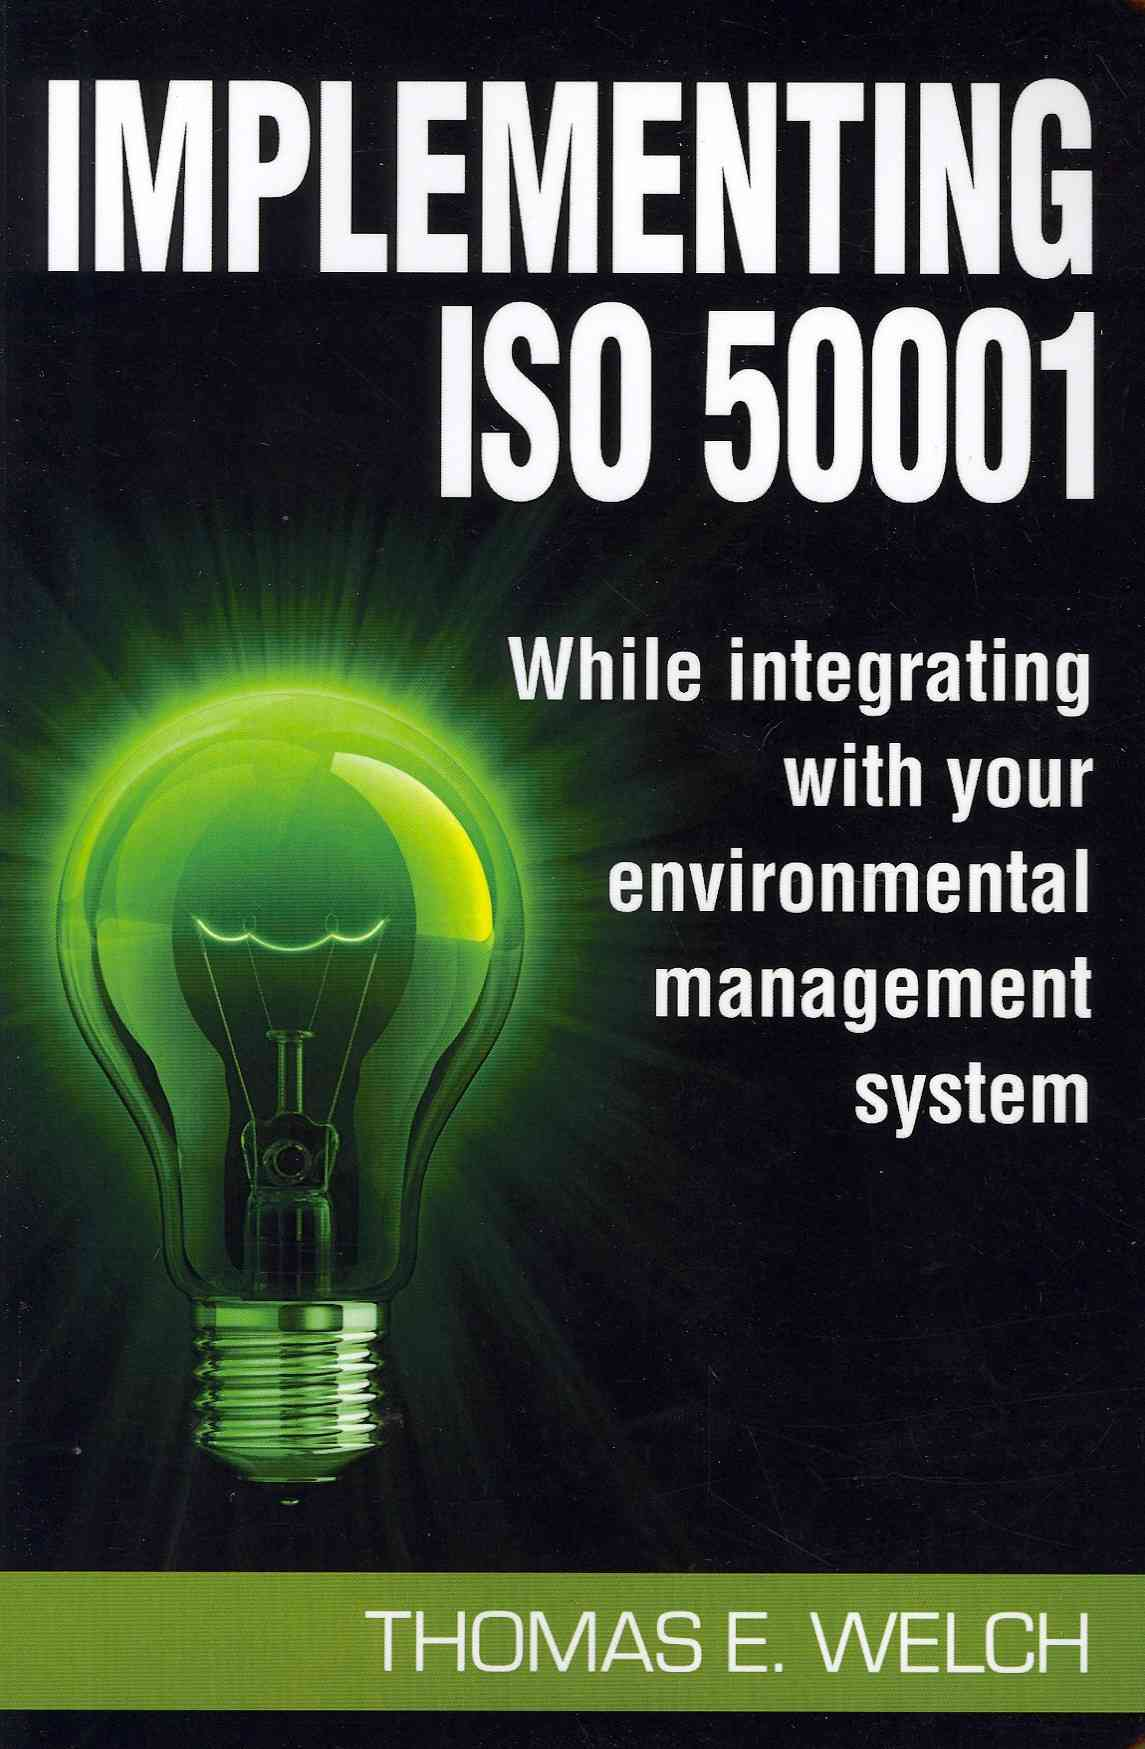 Implementing Iso 50001 By Welch, Tom